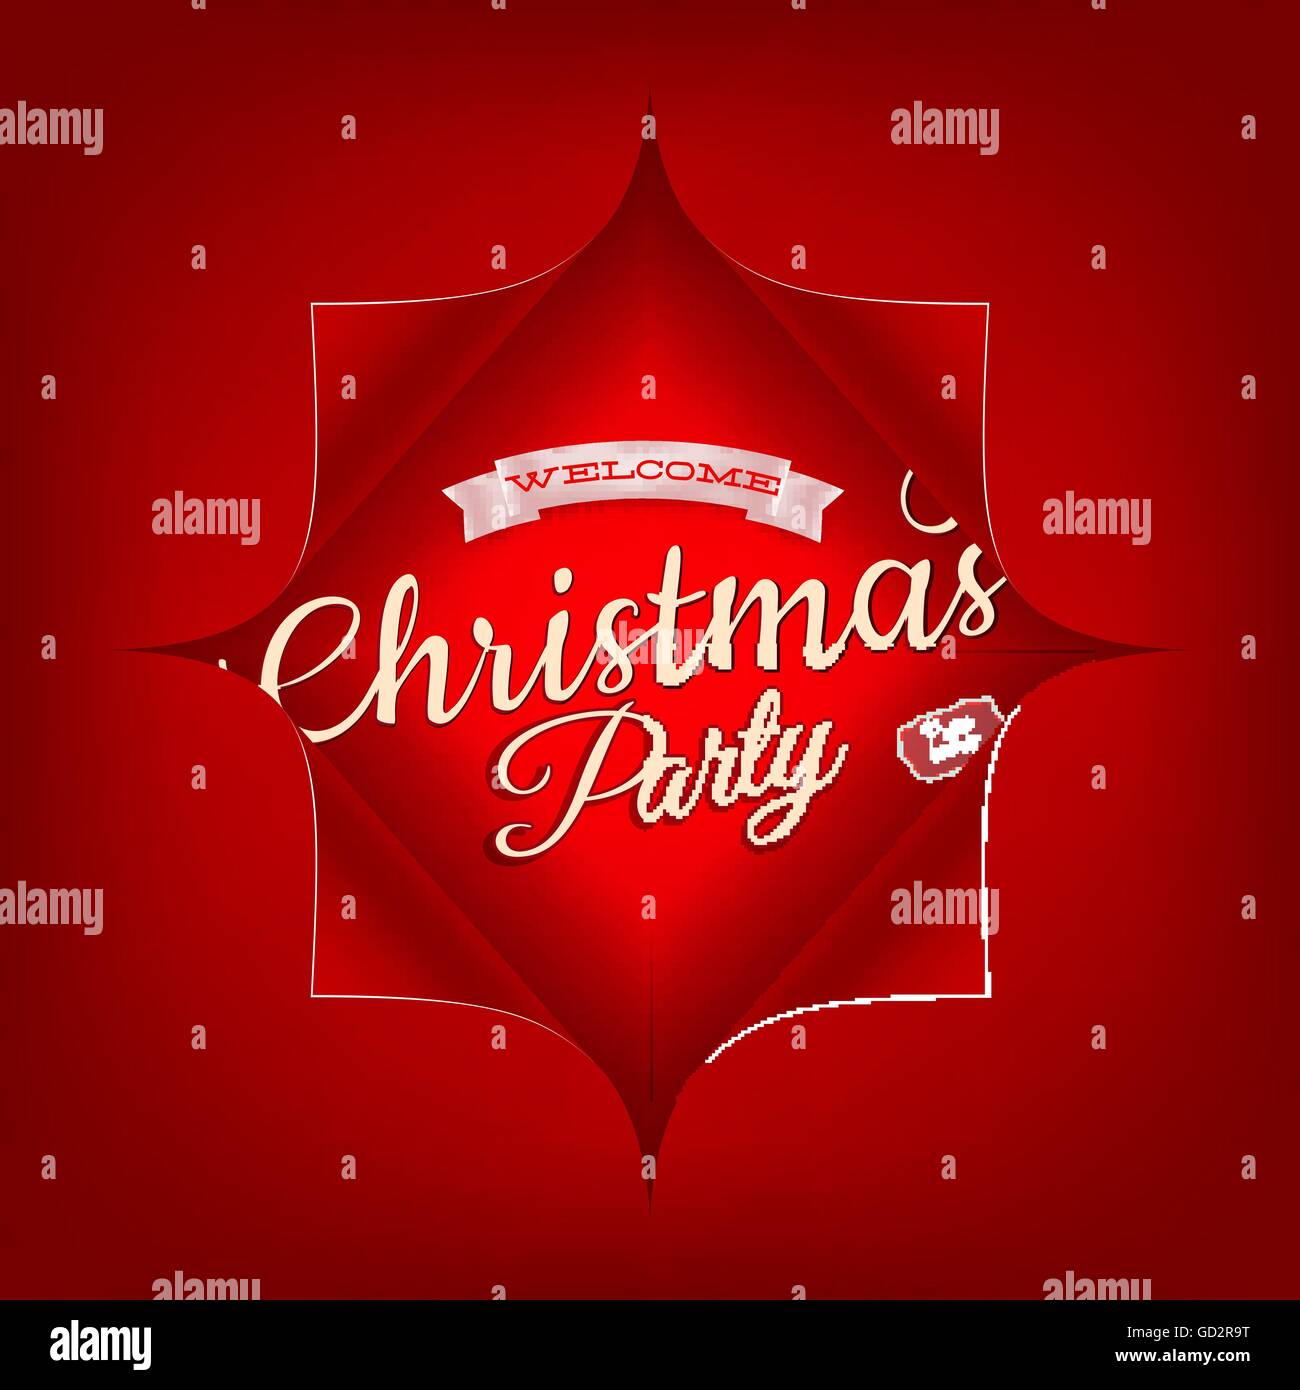 Merry Christmas Party invitation template. EPS 10 Stock Vector Art ...